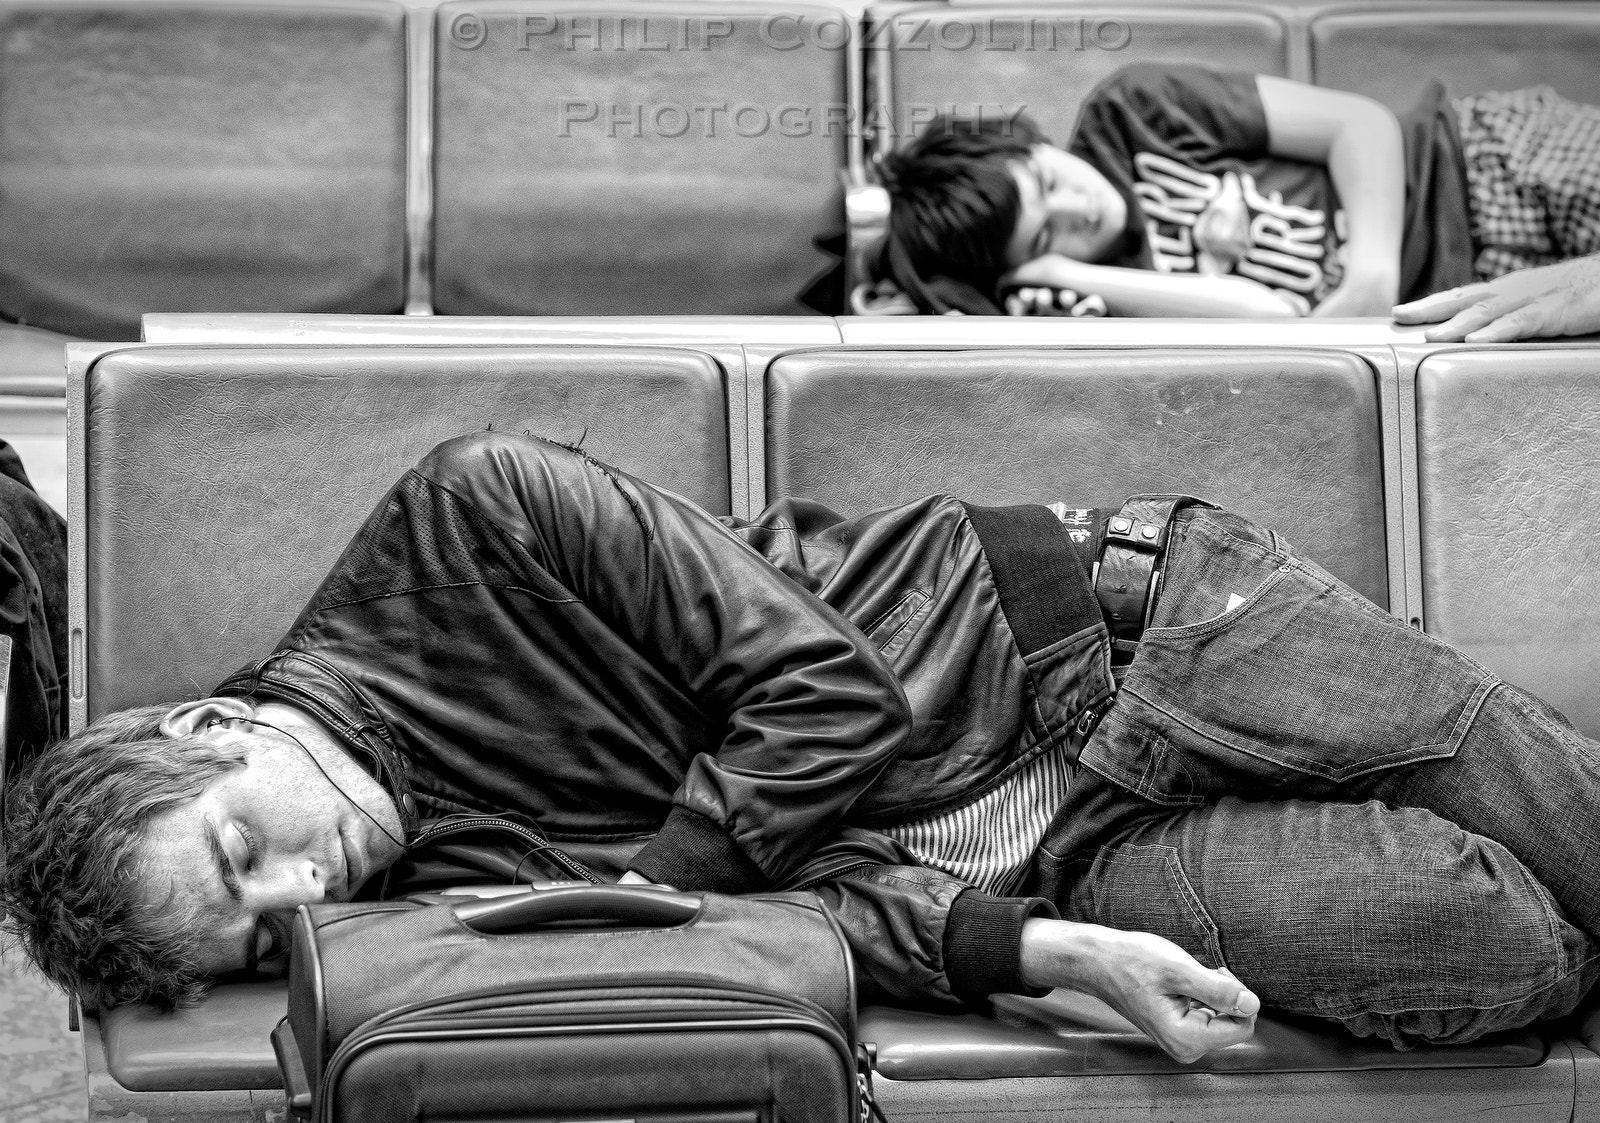 Photograph Heathrow Sleepers by Philip Cozzolino on 500px